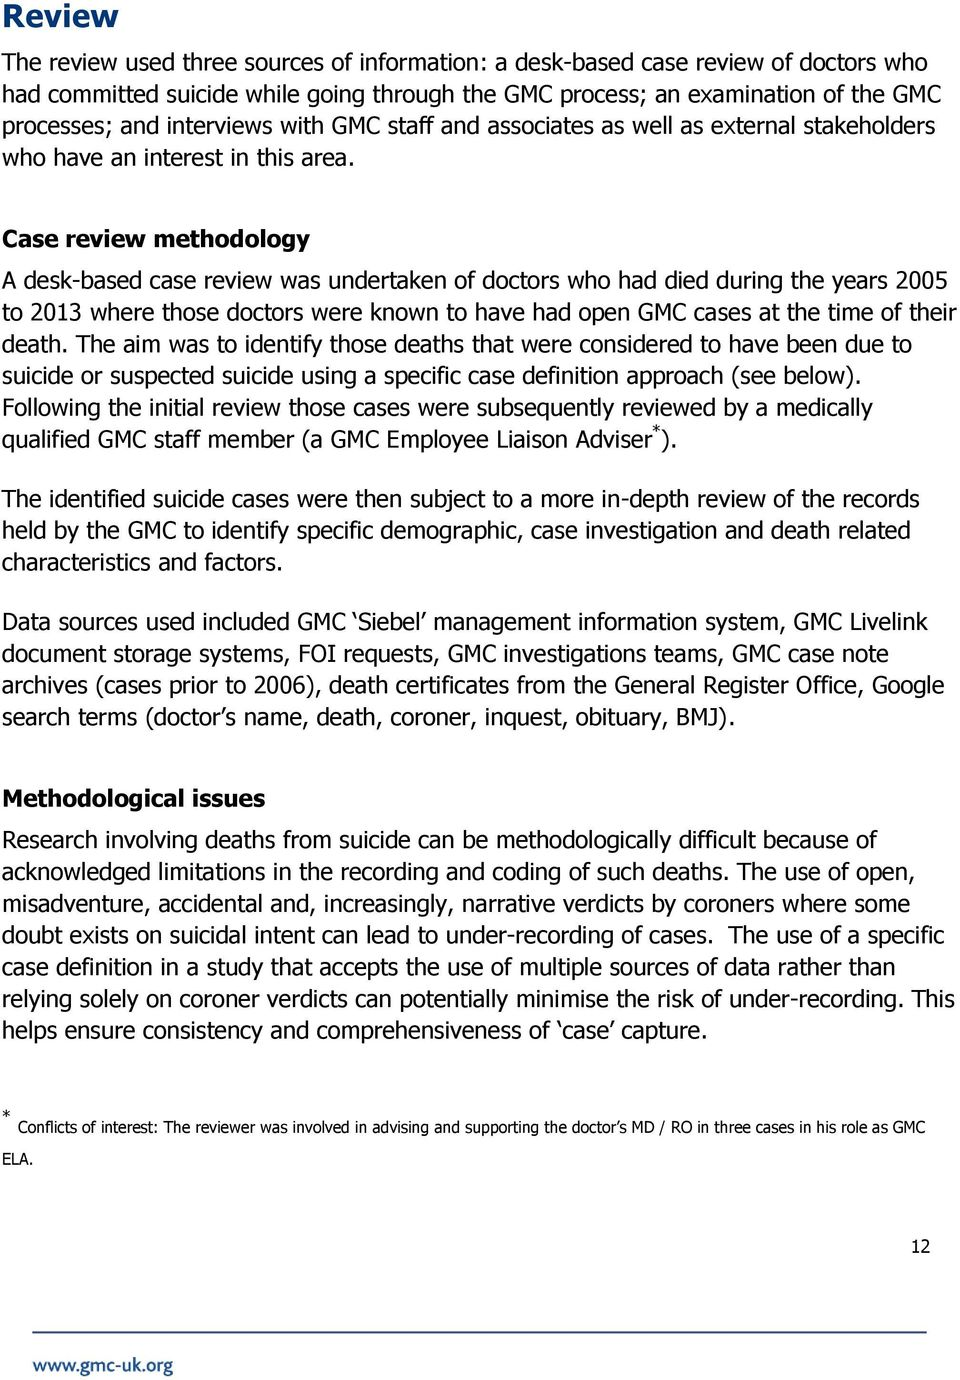 Case review methodology A desk-based case review was undertaken of doctors who had died during the years 2005 to 2013 where those doctors were known to have had open GMC cases at the time of their